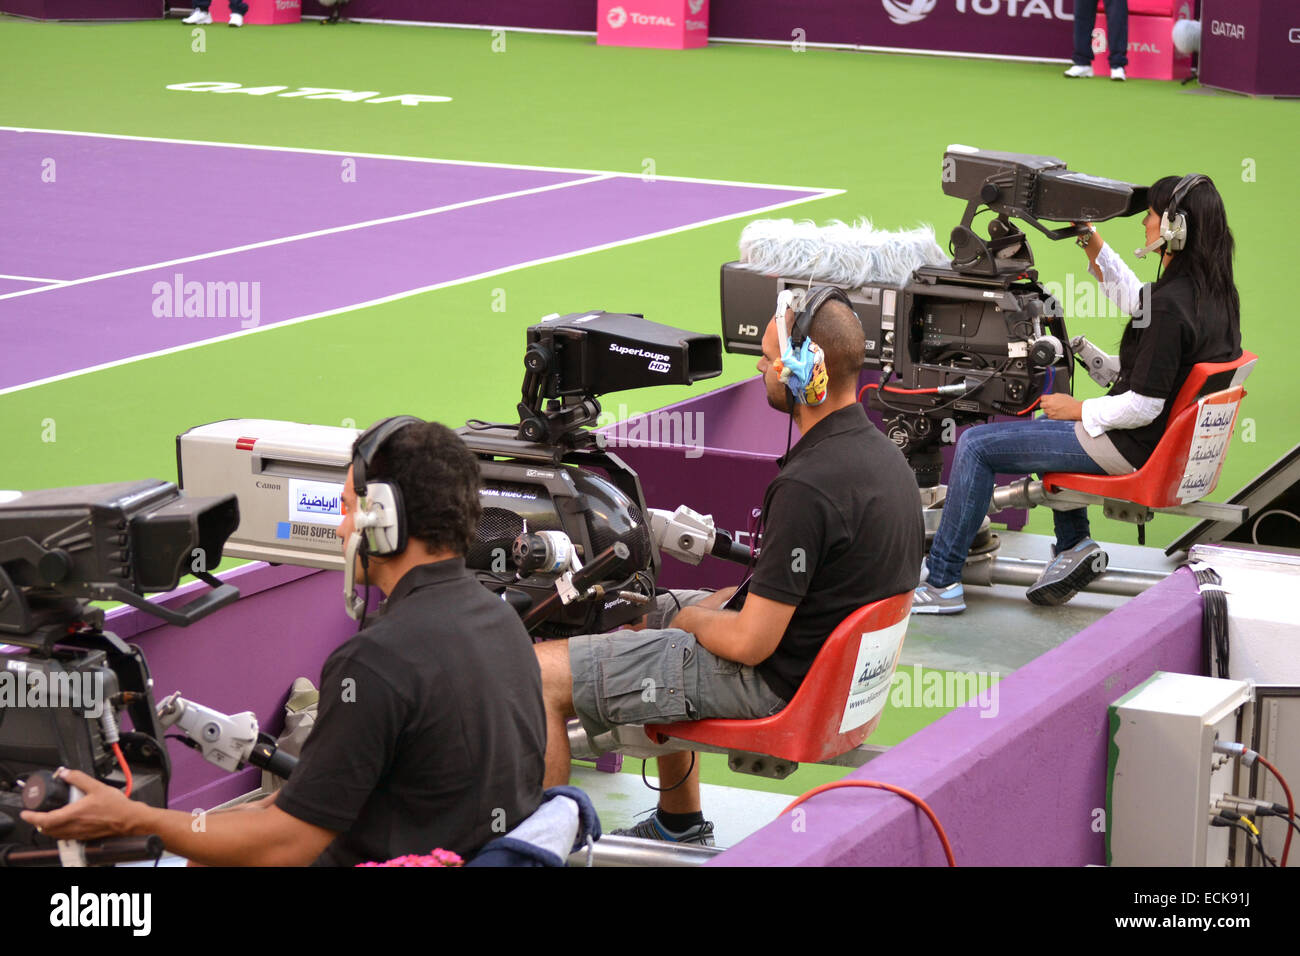 Aljazeera Sports Cameramen covering live Qatar Total Open on February 11, 2013 in Doha, Qatar. - Stock Image